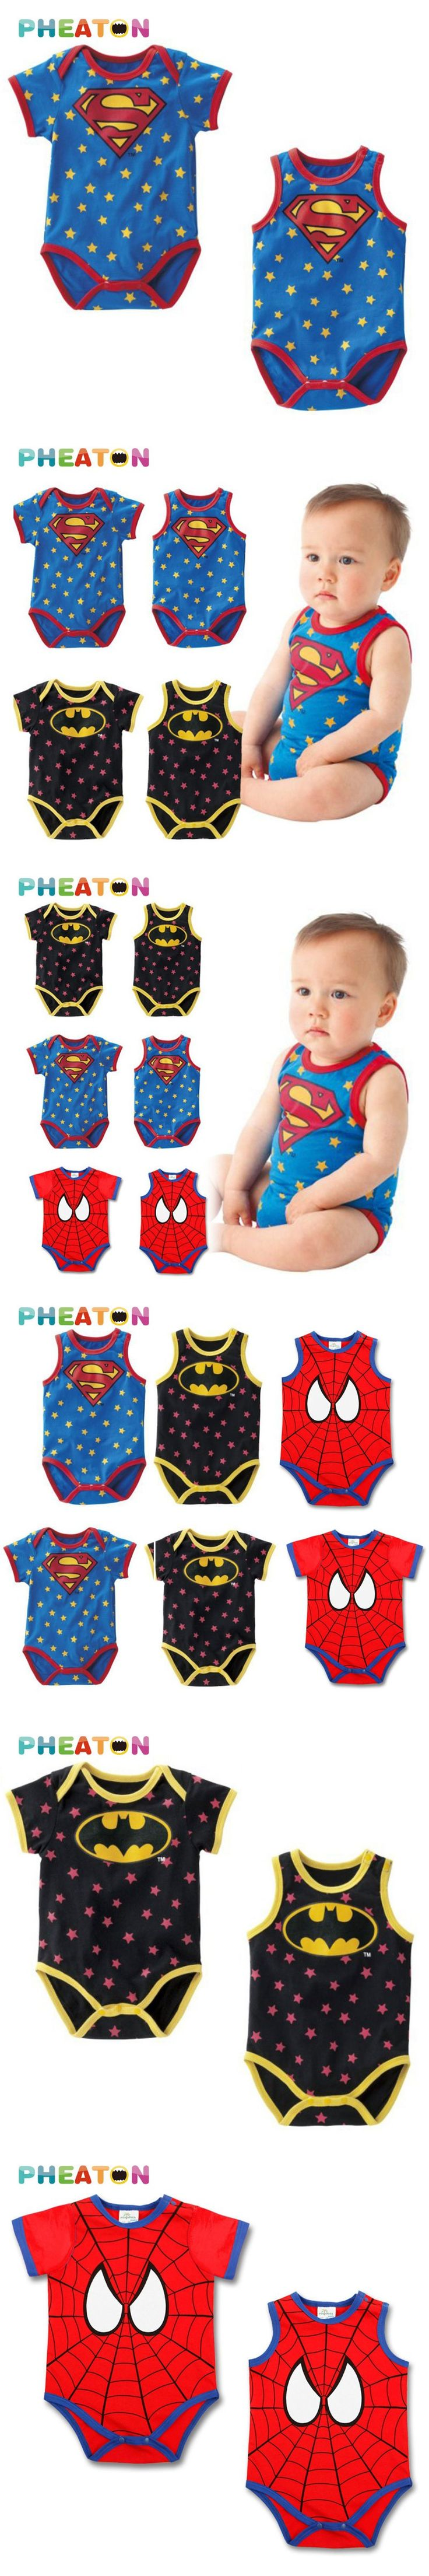 Newborn Baby Rompers Spiderman Baby Clothes Batman Baby Boy Romper Superman Short Sleeve Jumpsuits Children Clothing